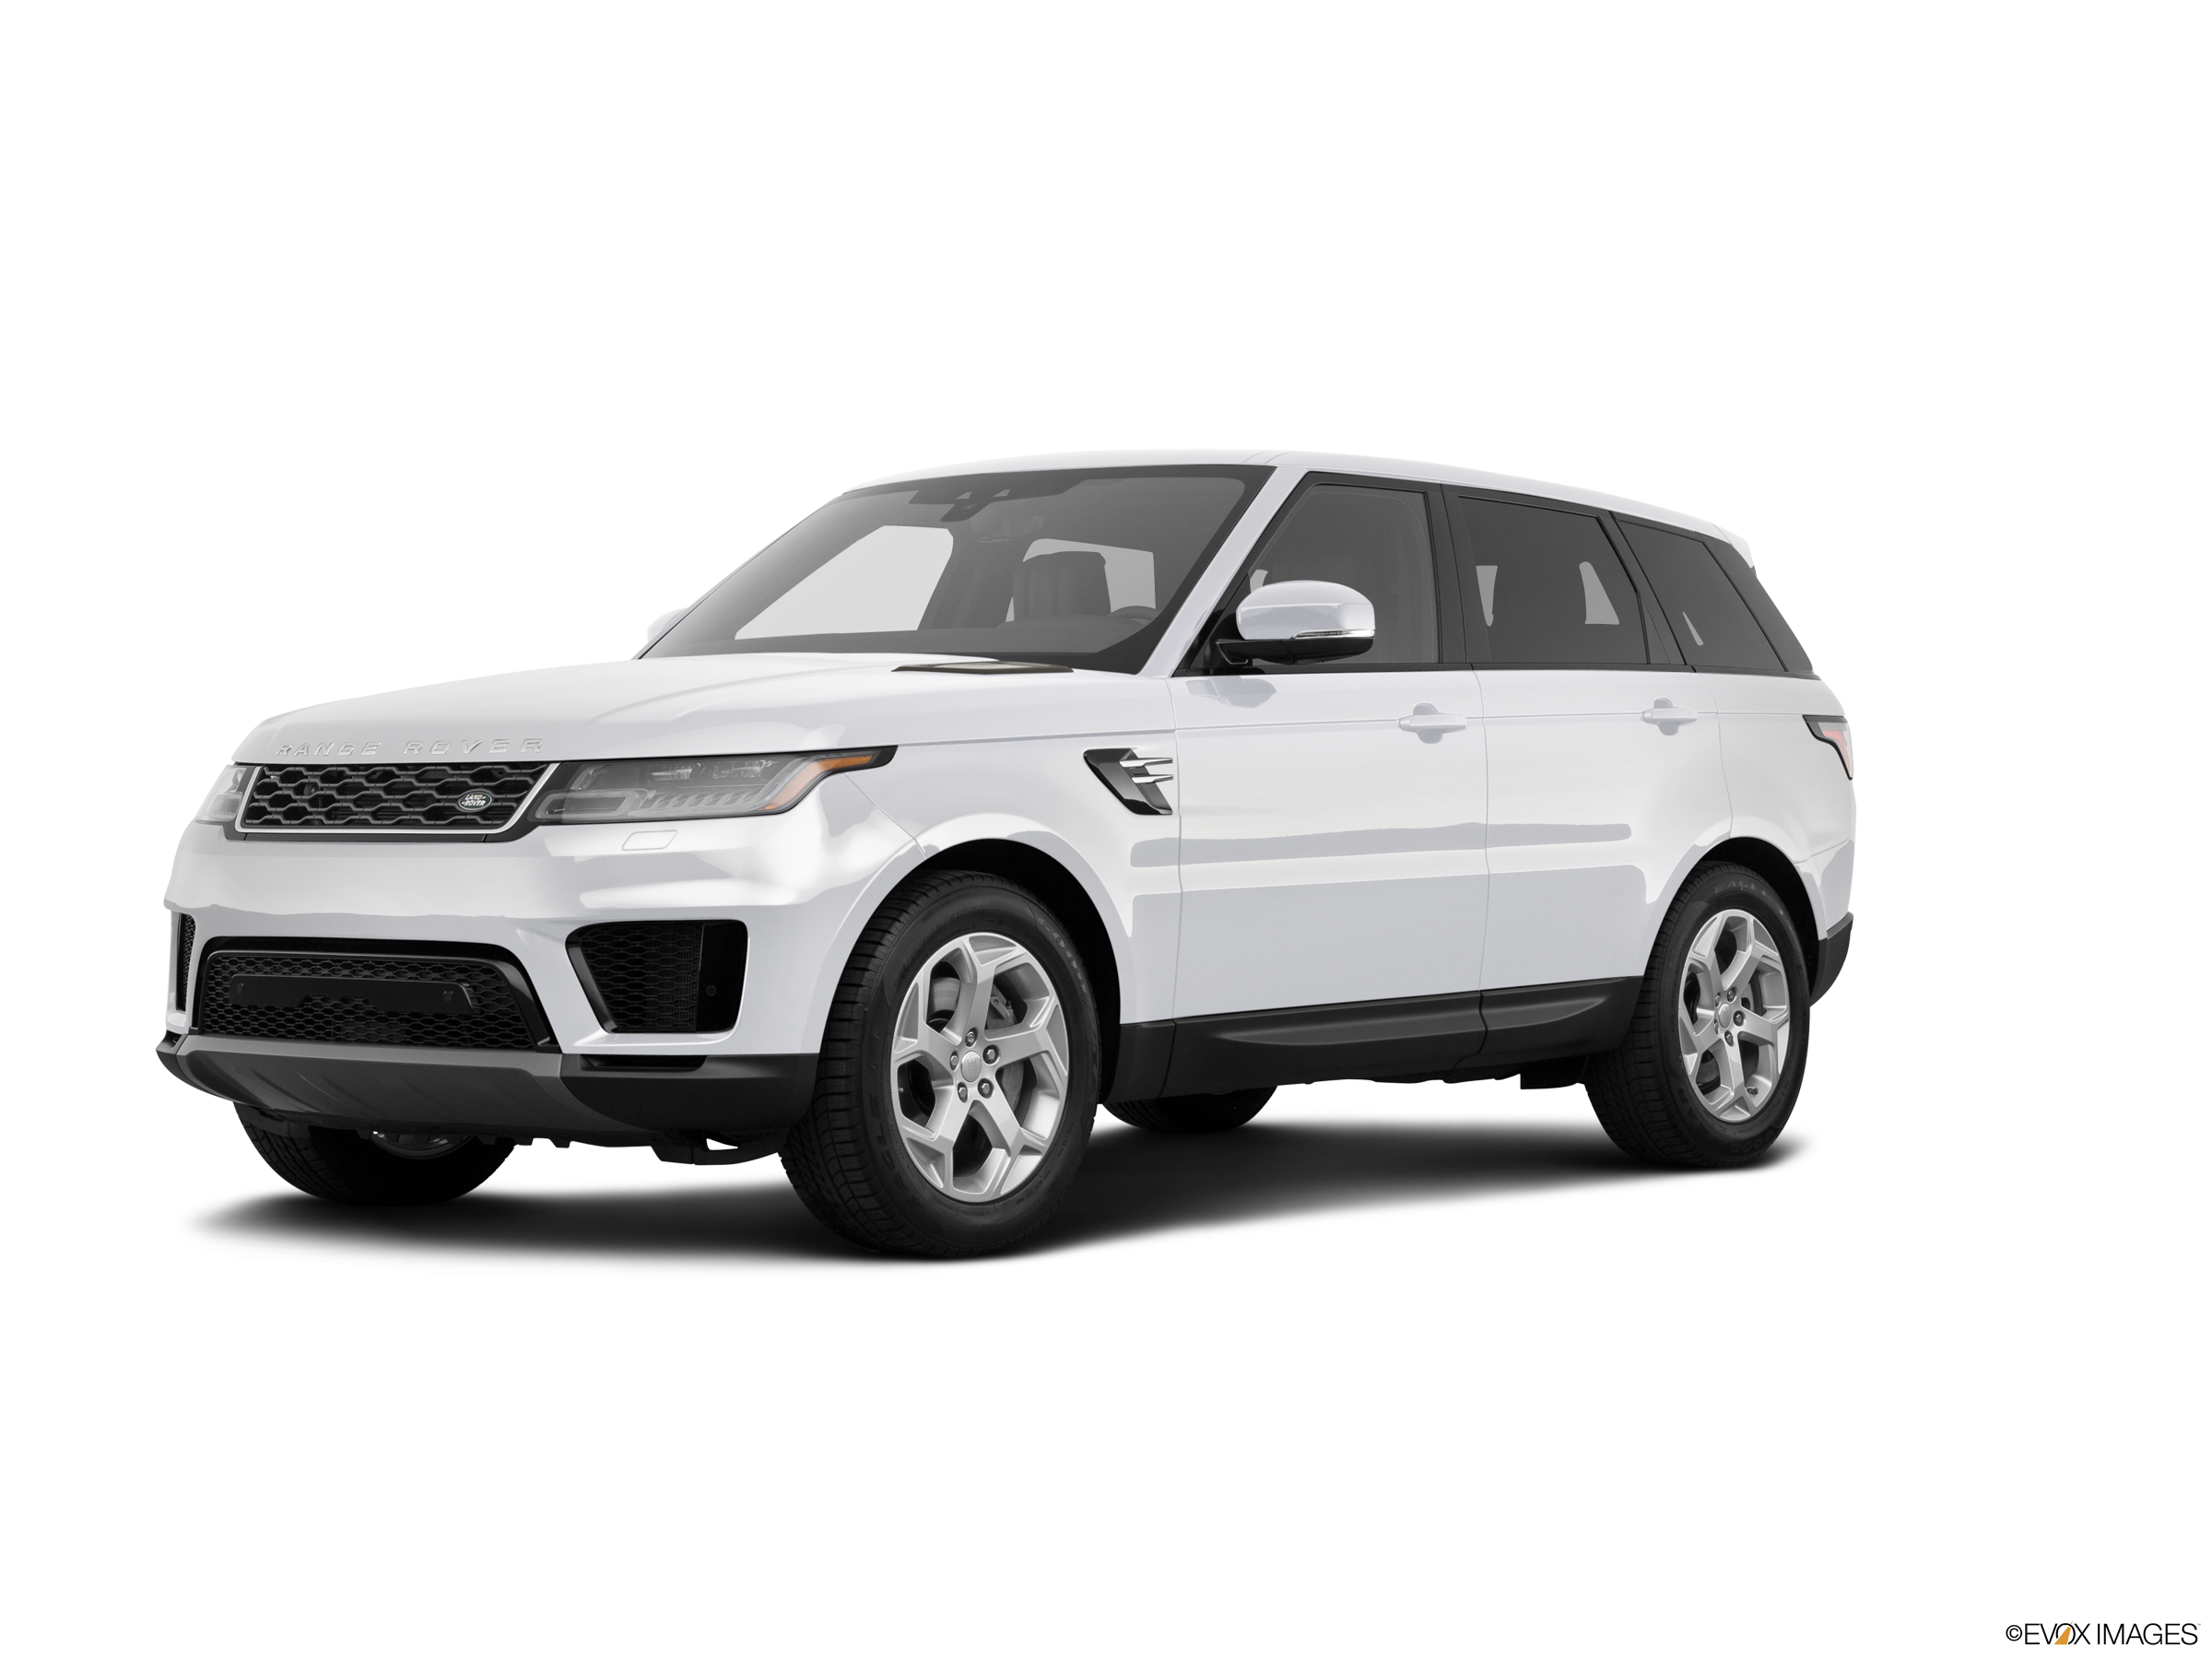 Top Consumer Rated Electric Cars of 2019 - 2019 Land Rover Range Rover Sport